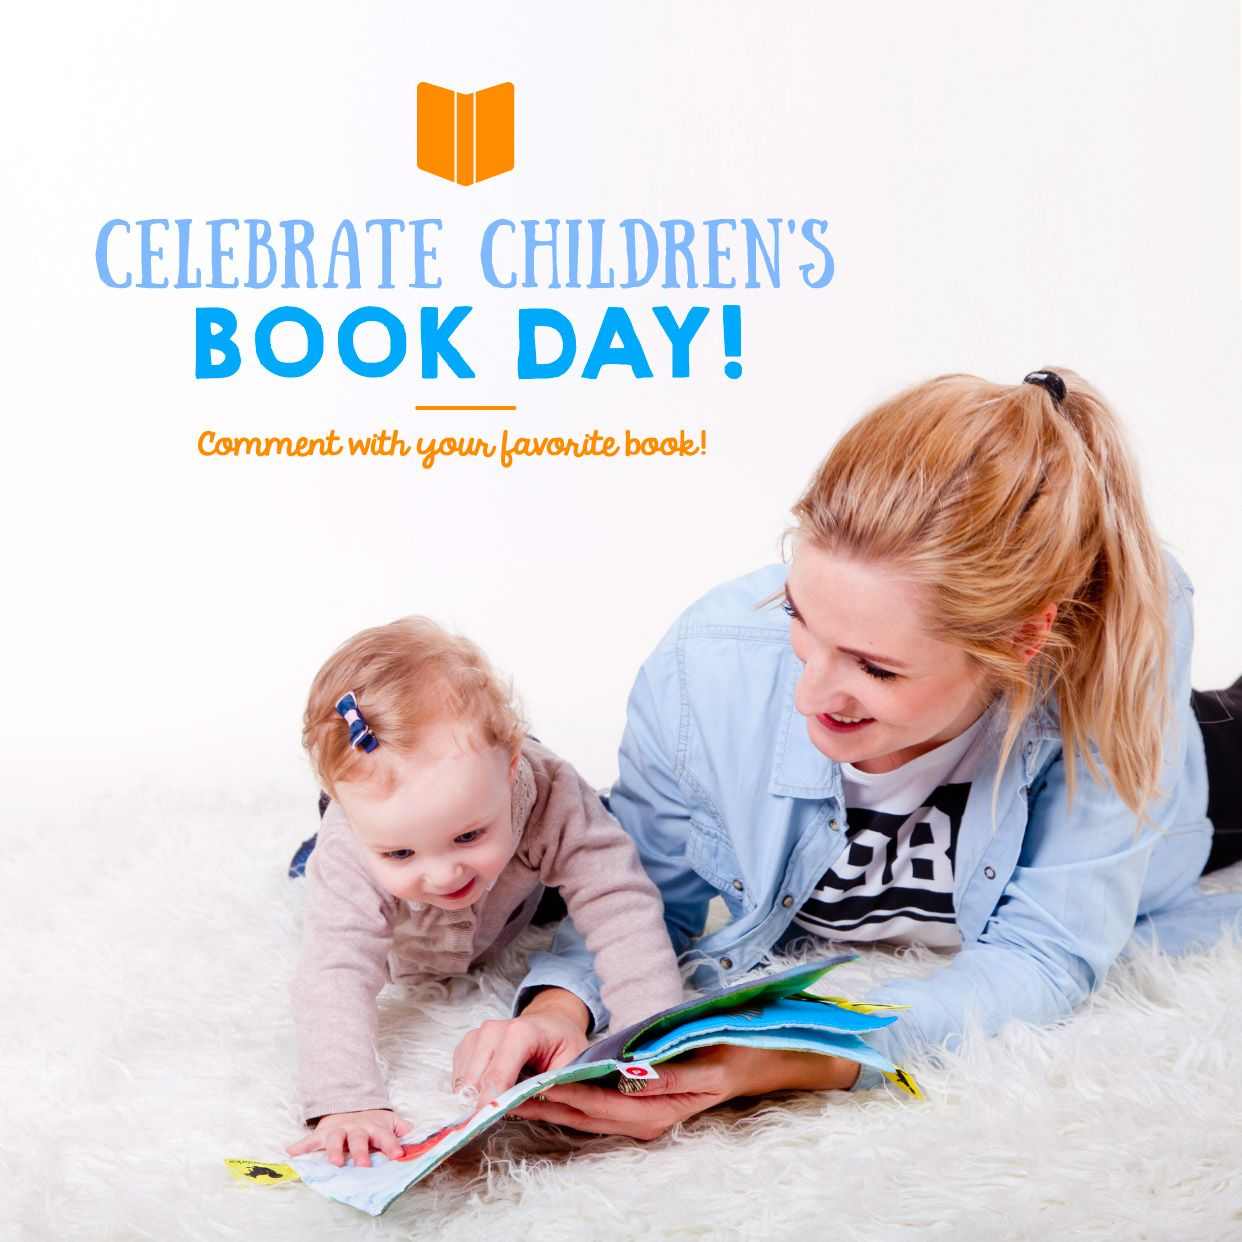 IT'S INTERNATIONAL CHILDREN'S Book Day! Everyone had a